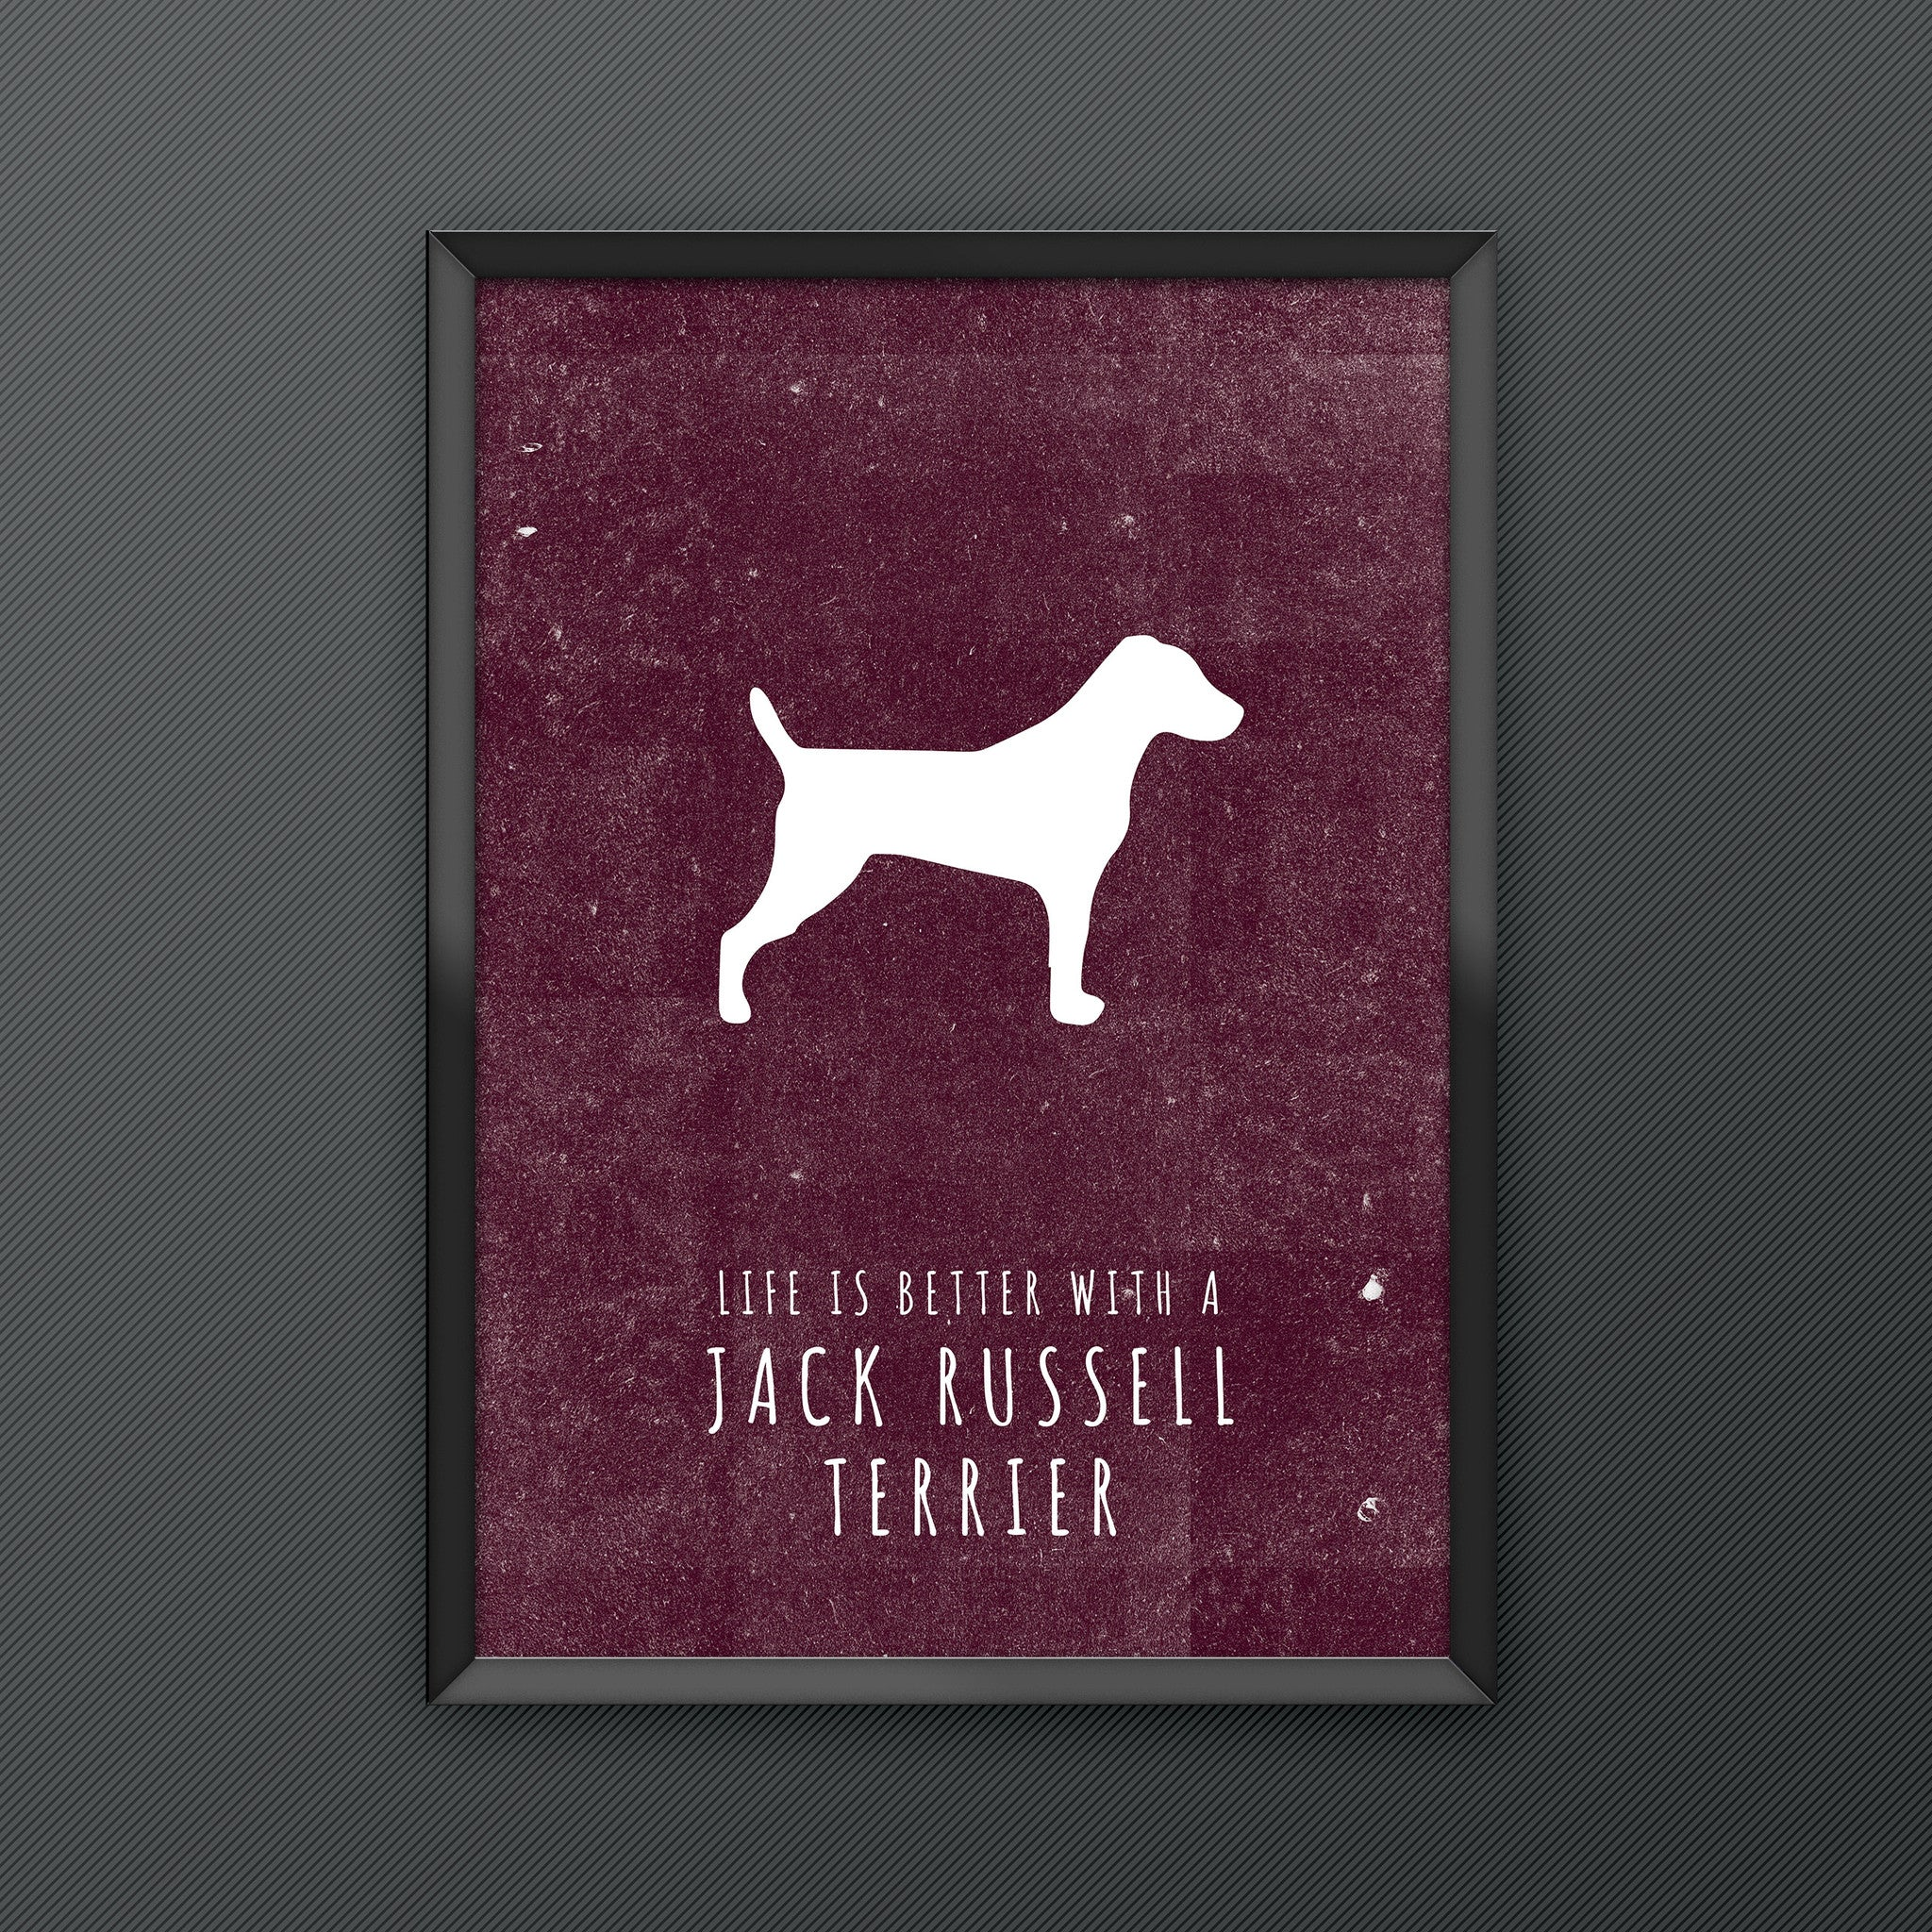 Jack Russell Terrier Dog Print